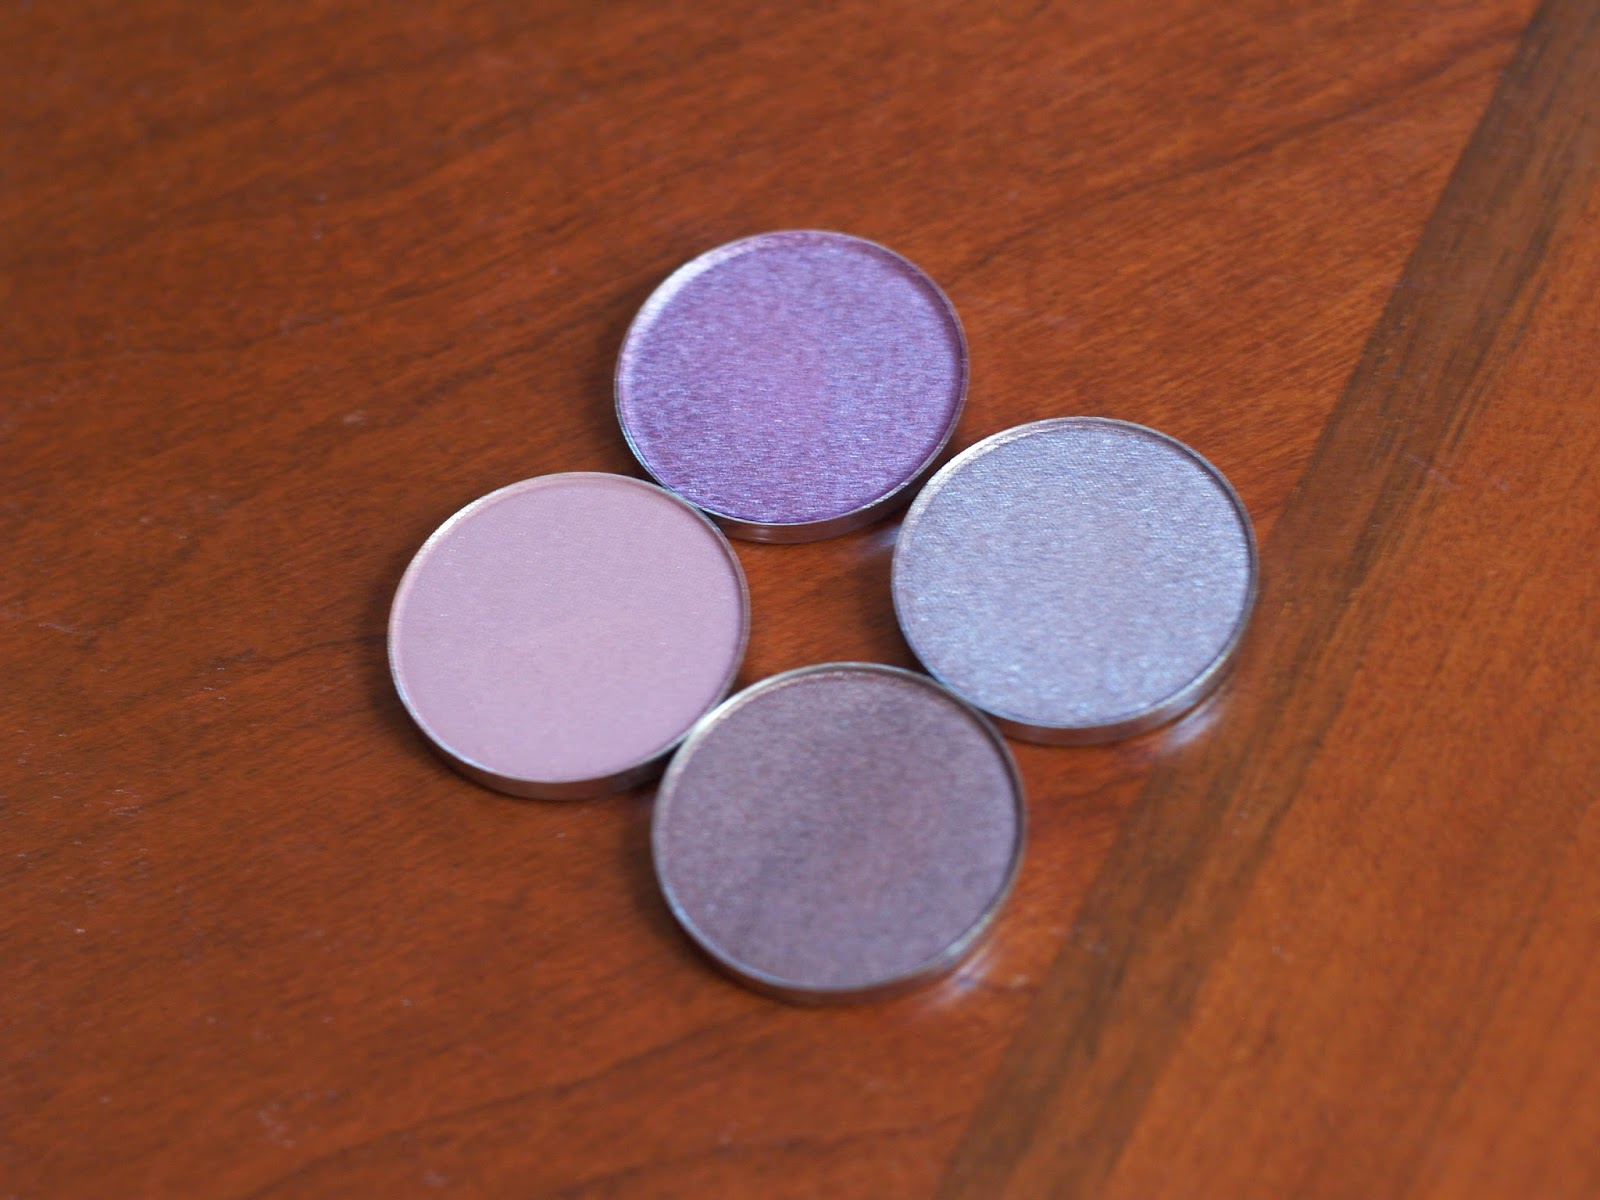 Coastal Scents eyeshadow